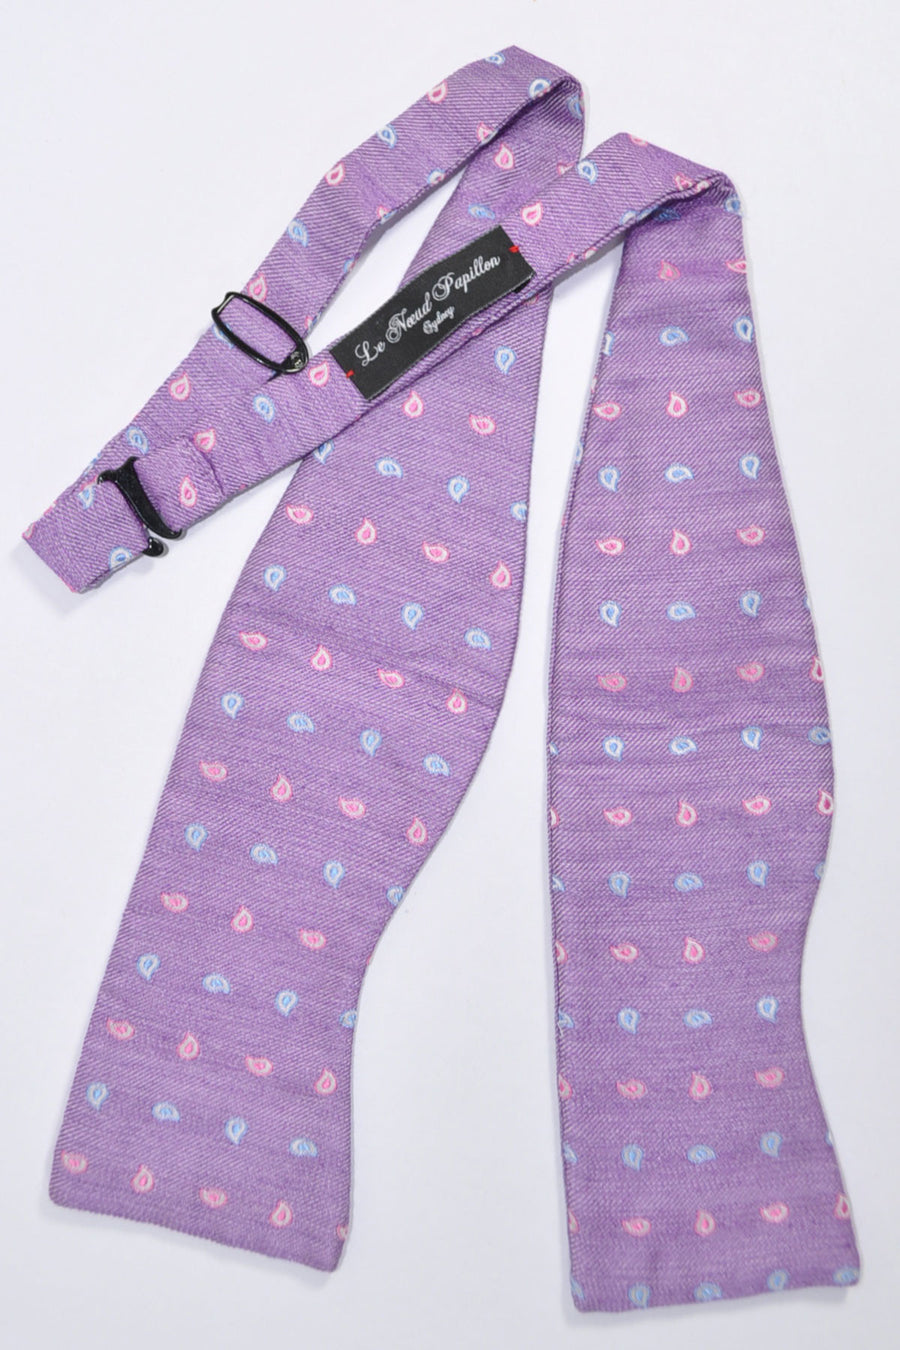 Le Noeud Papillon Bow Tie Purple Paisley Self Tie